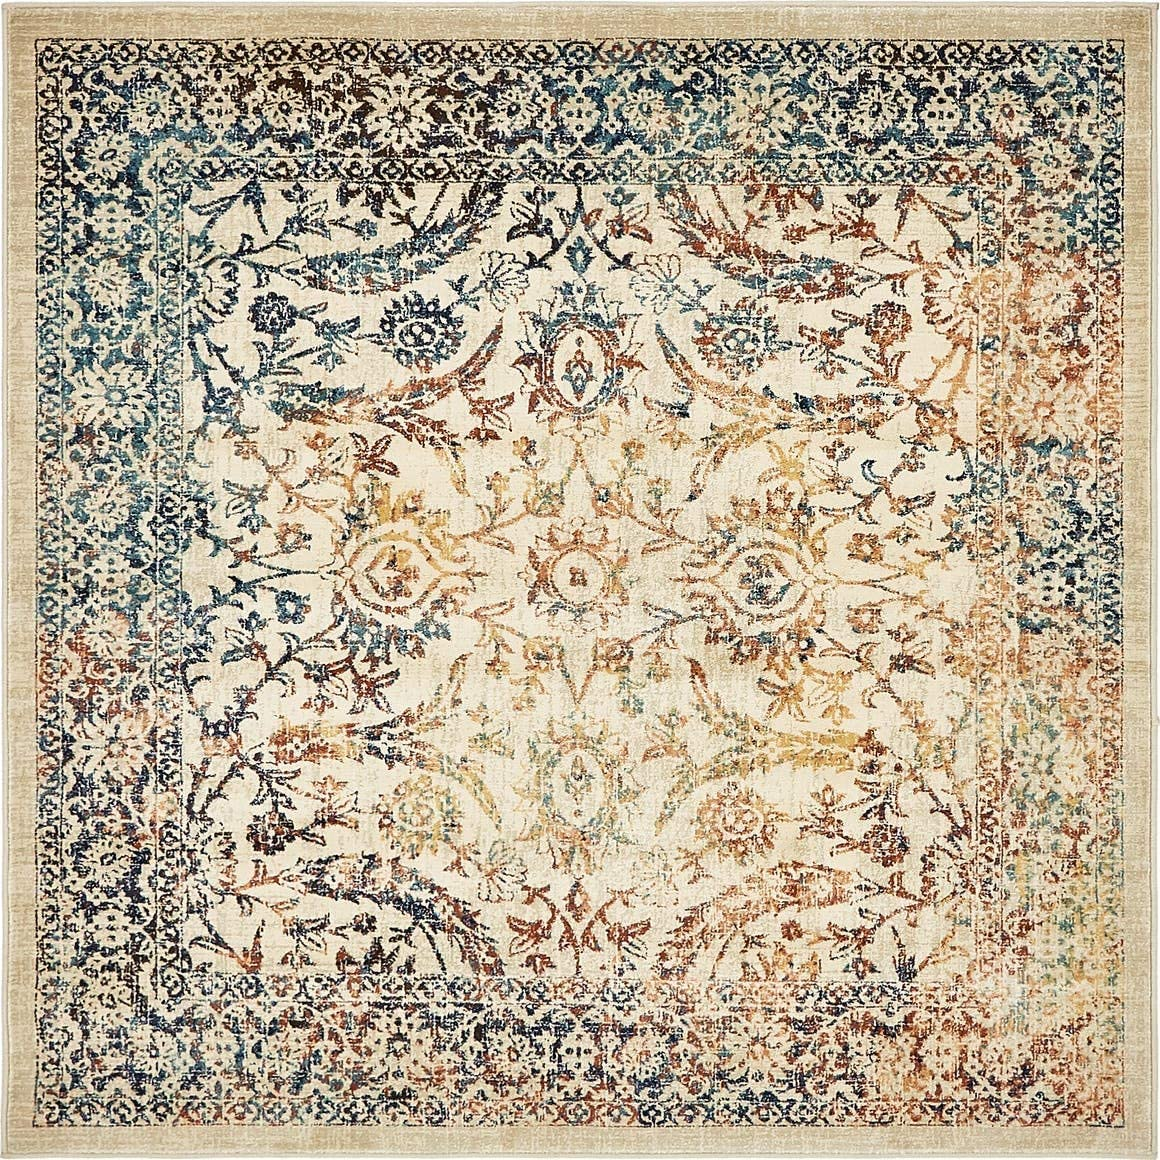 Unique Loom Oslo Collection Distressed Over-Dyed Botanical Tradtional Beige Square Rug 6 x 6